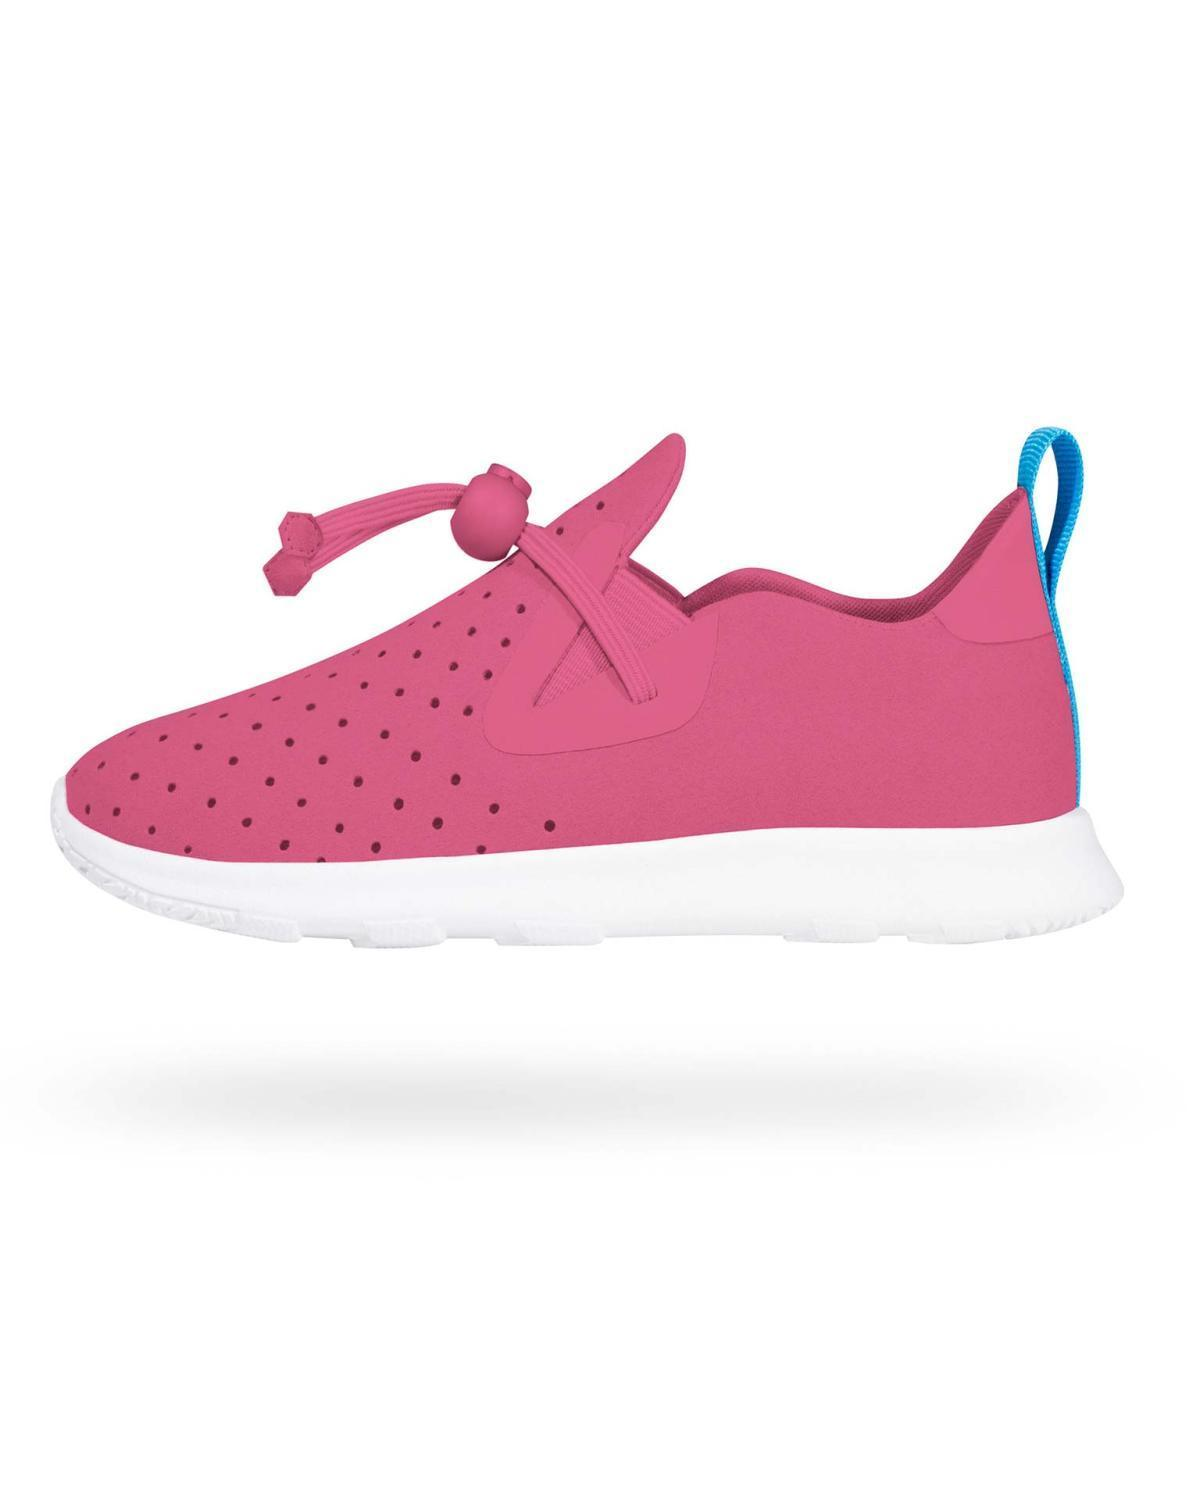 Little native shoes girl 6 Apollo Moc in Hollywood Pink